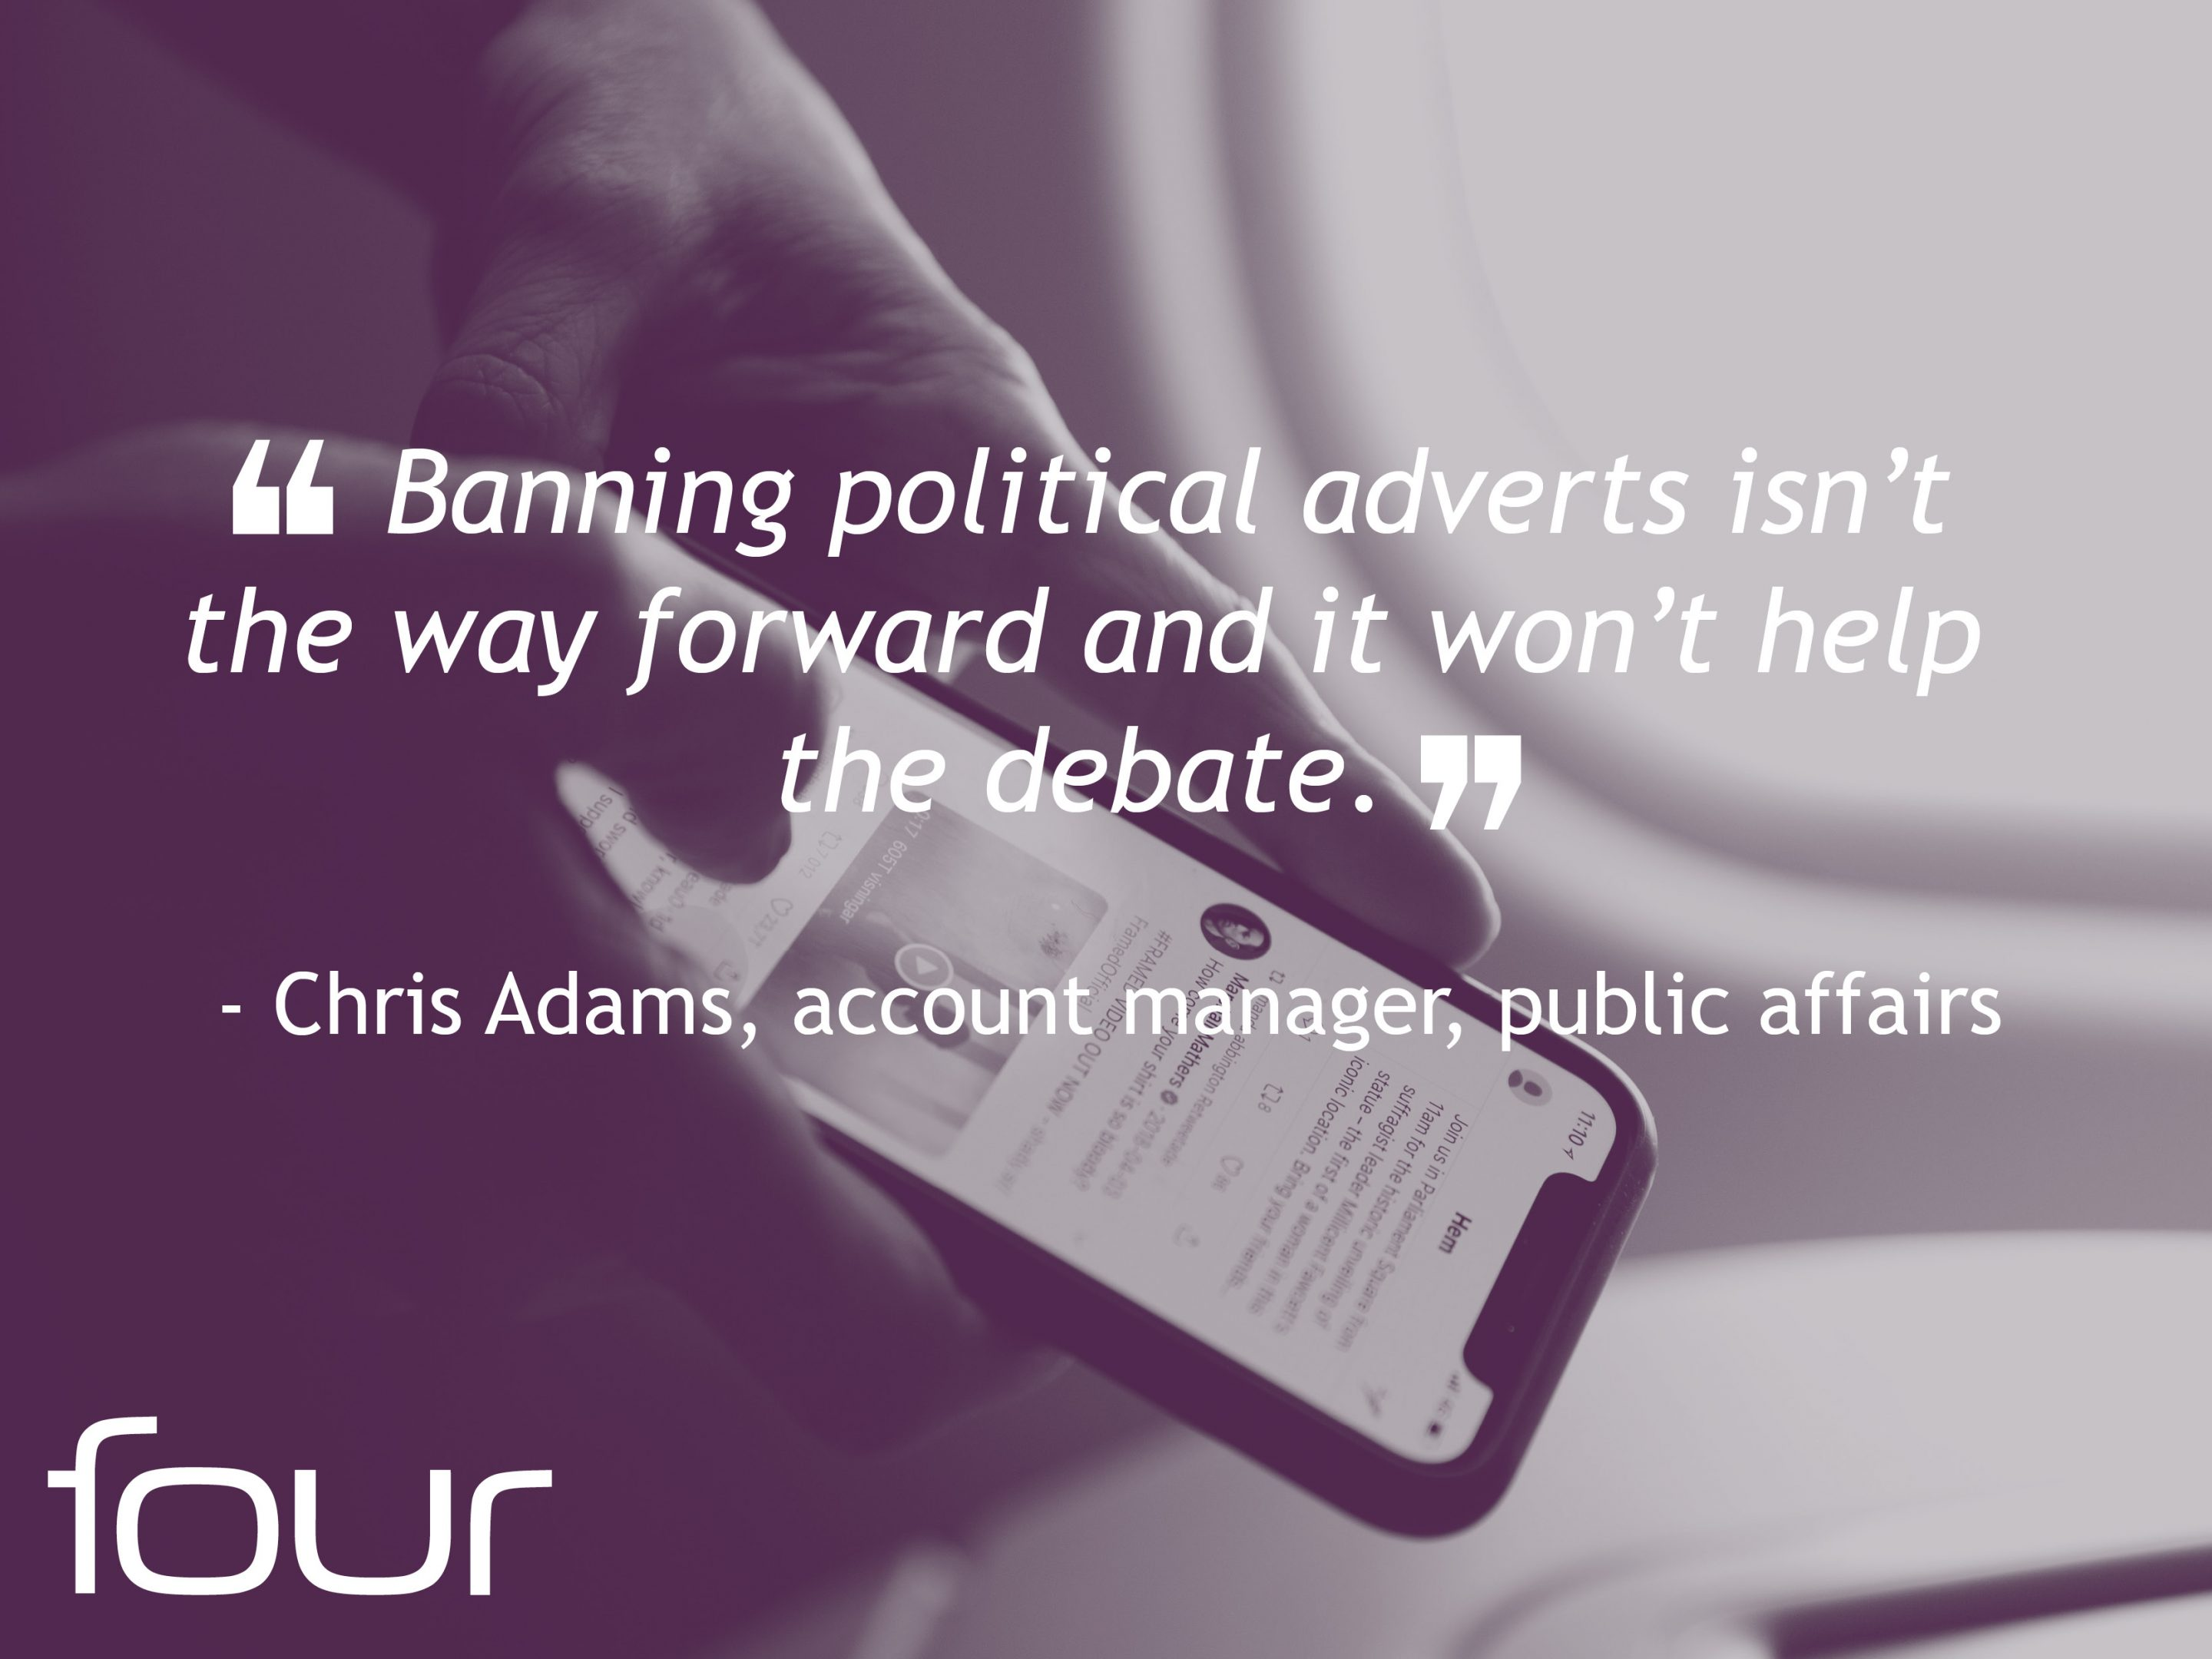 Chris Adams Political Adverts Quote